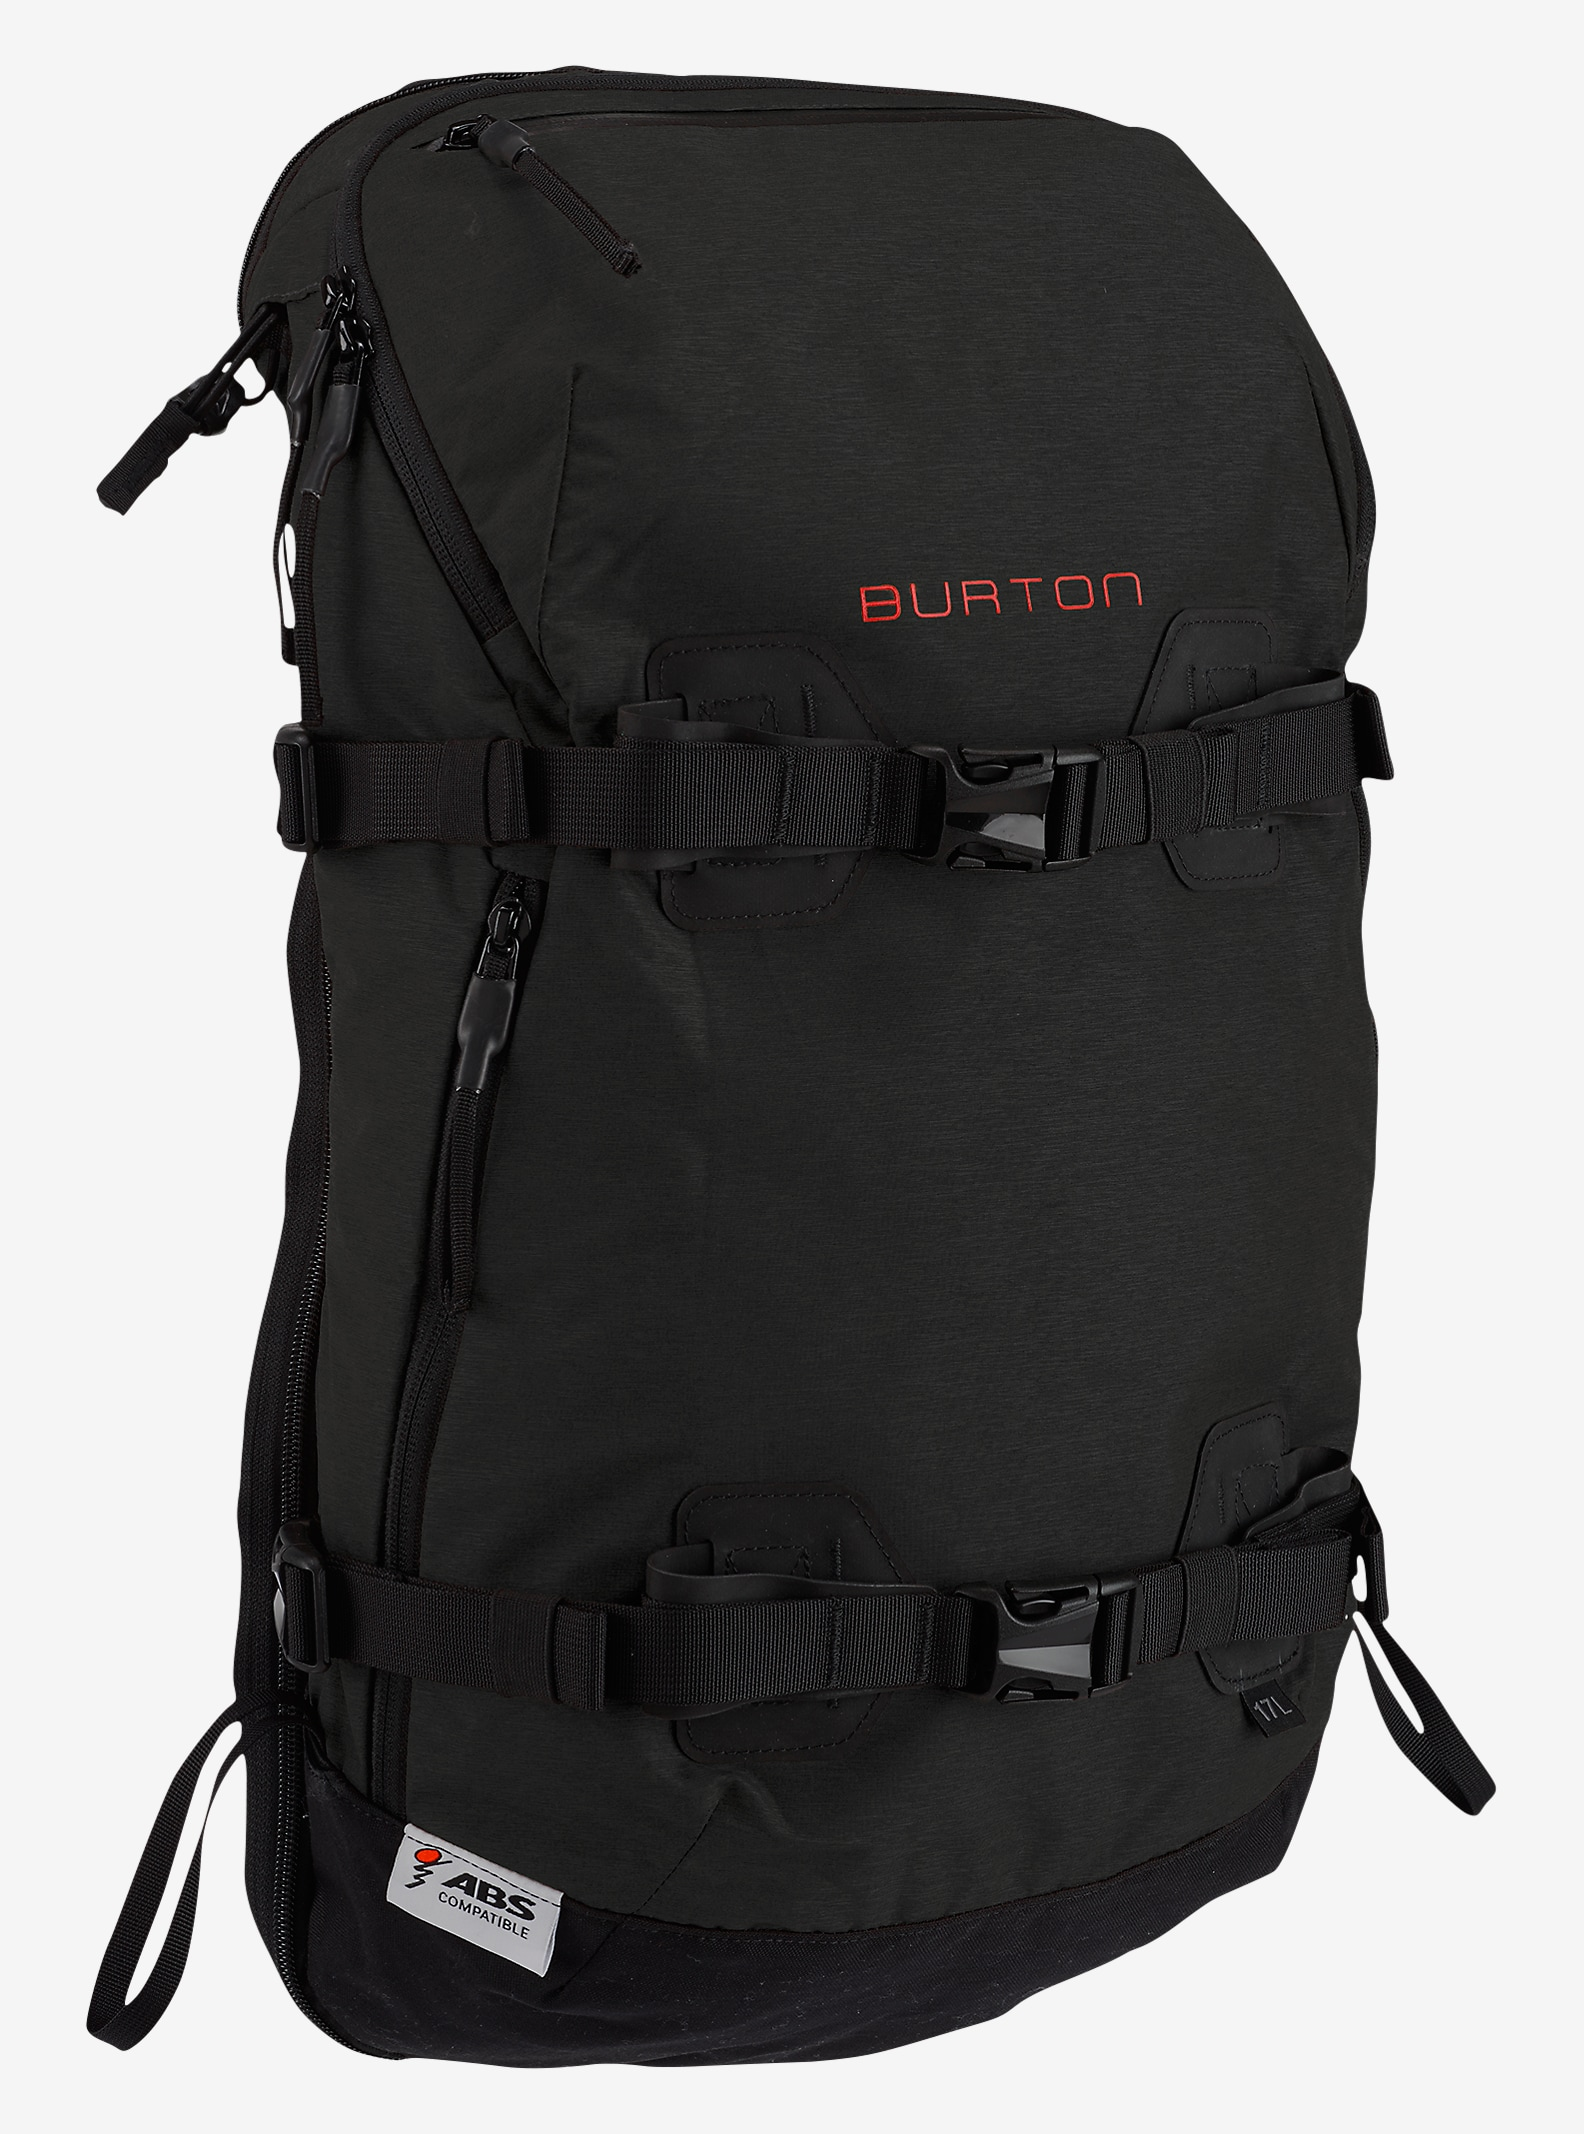 Burton ABS Vario 17L Cover shown in True Black Cordura®